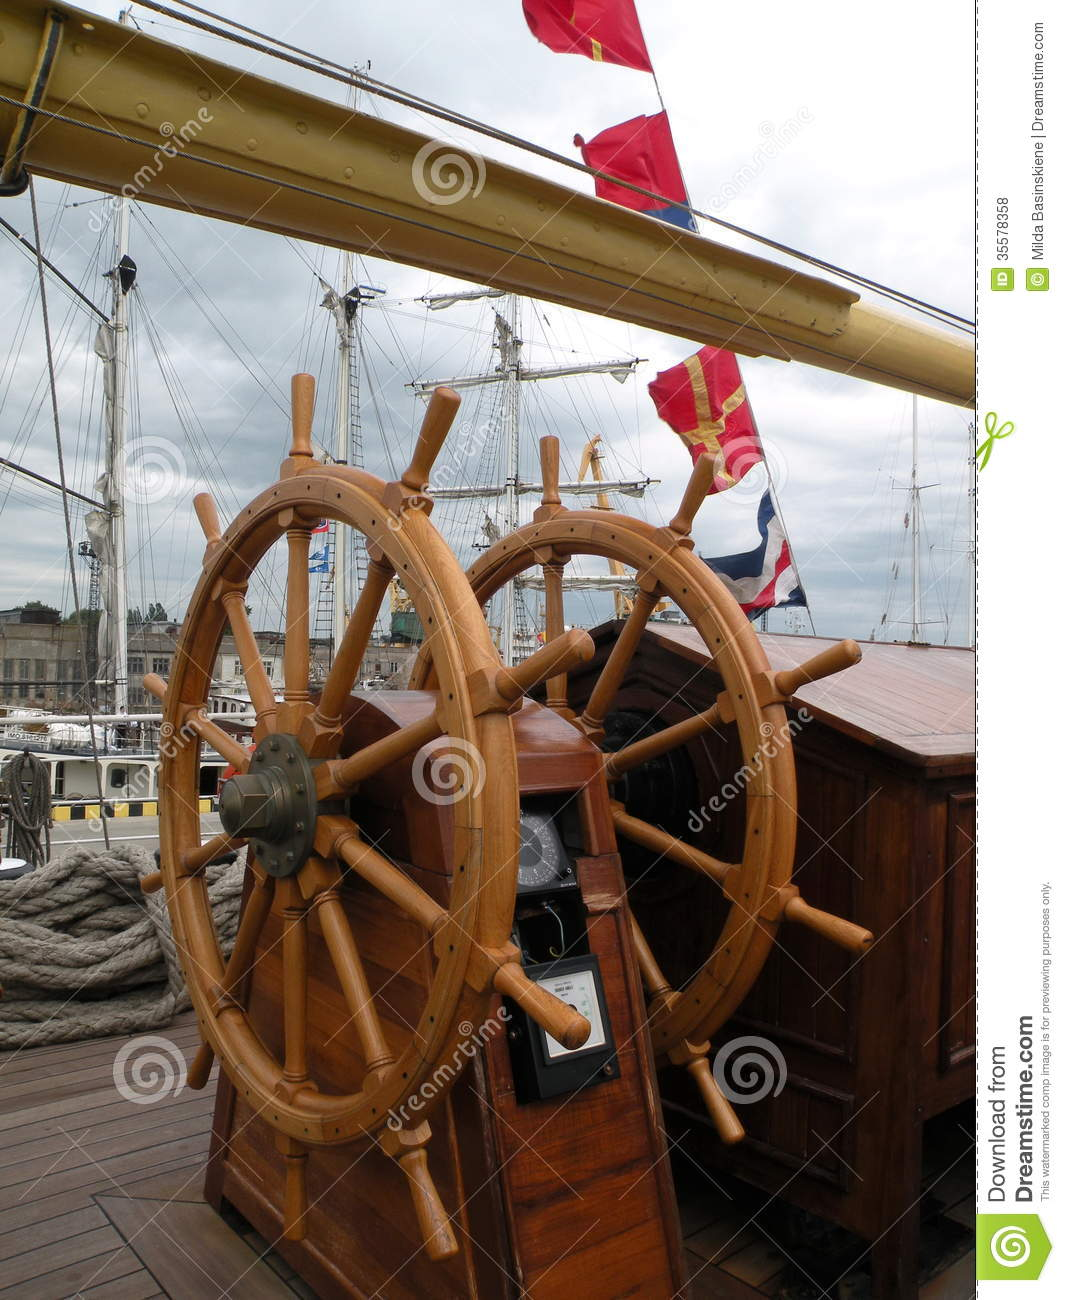 Ship rudder stock photo. Image of natural, view, festive - 35578358